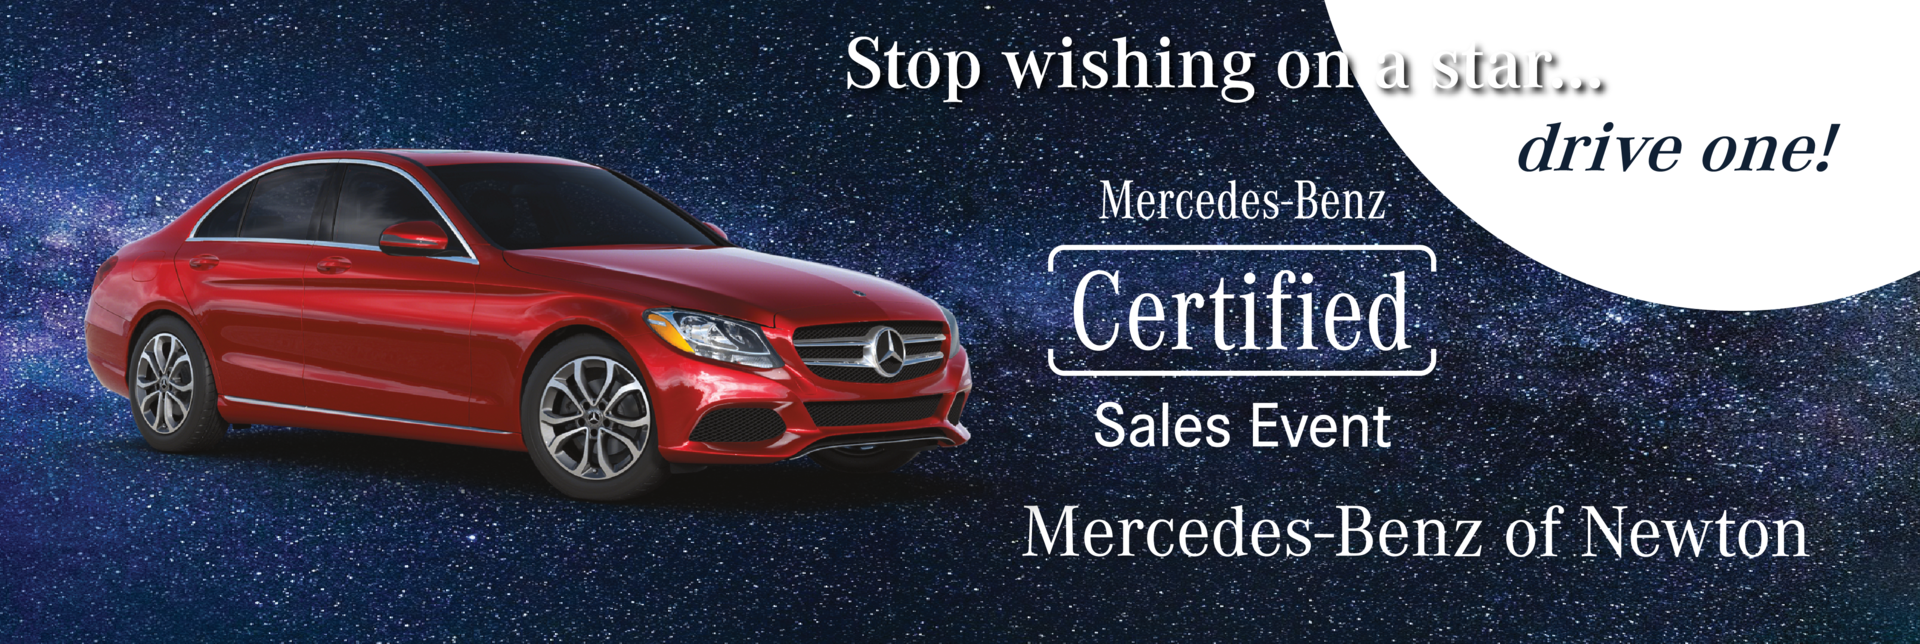 Mercedes Benz Dealers In Nj >> Pre Owned Vehicles For Sale In Newton Nj Mercedes Benz Of